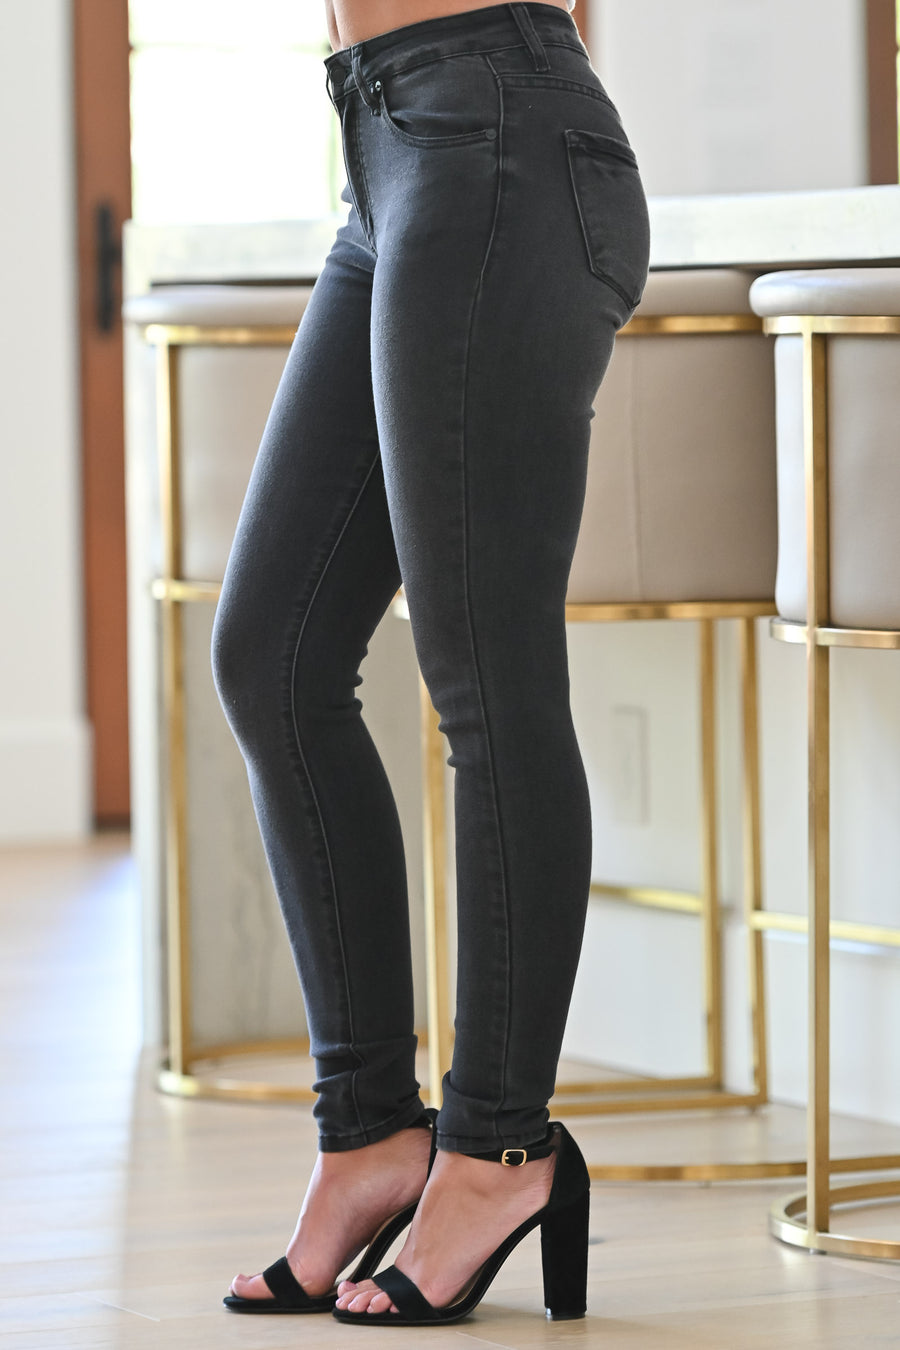 KAN CAN Fiona Skinny Jeans - Faded Black womens trendy faded black wash skinny jeans closet candy close; Model: Hannah Ann S